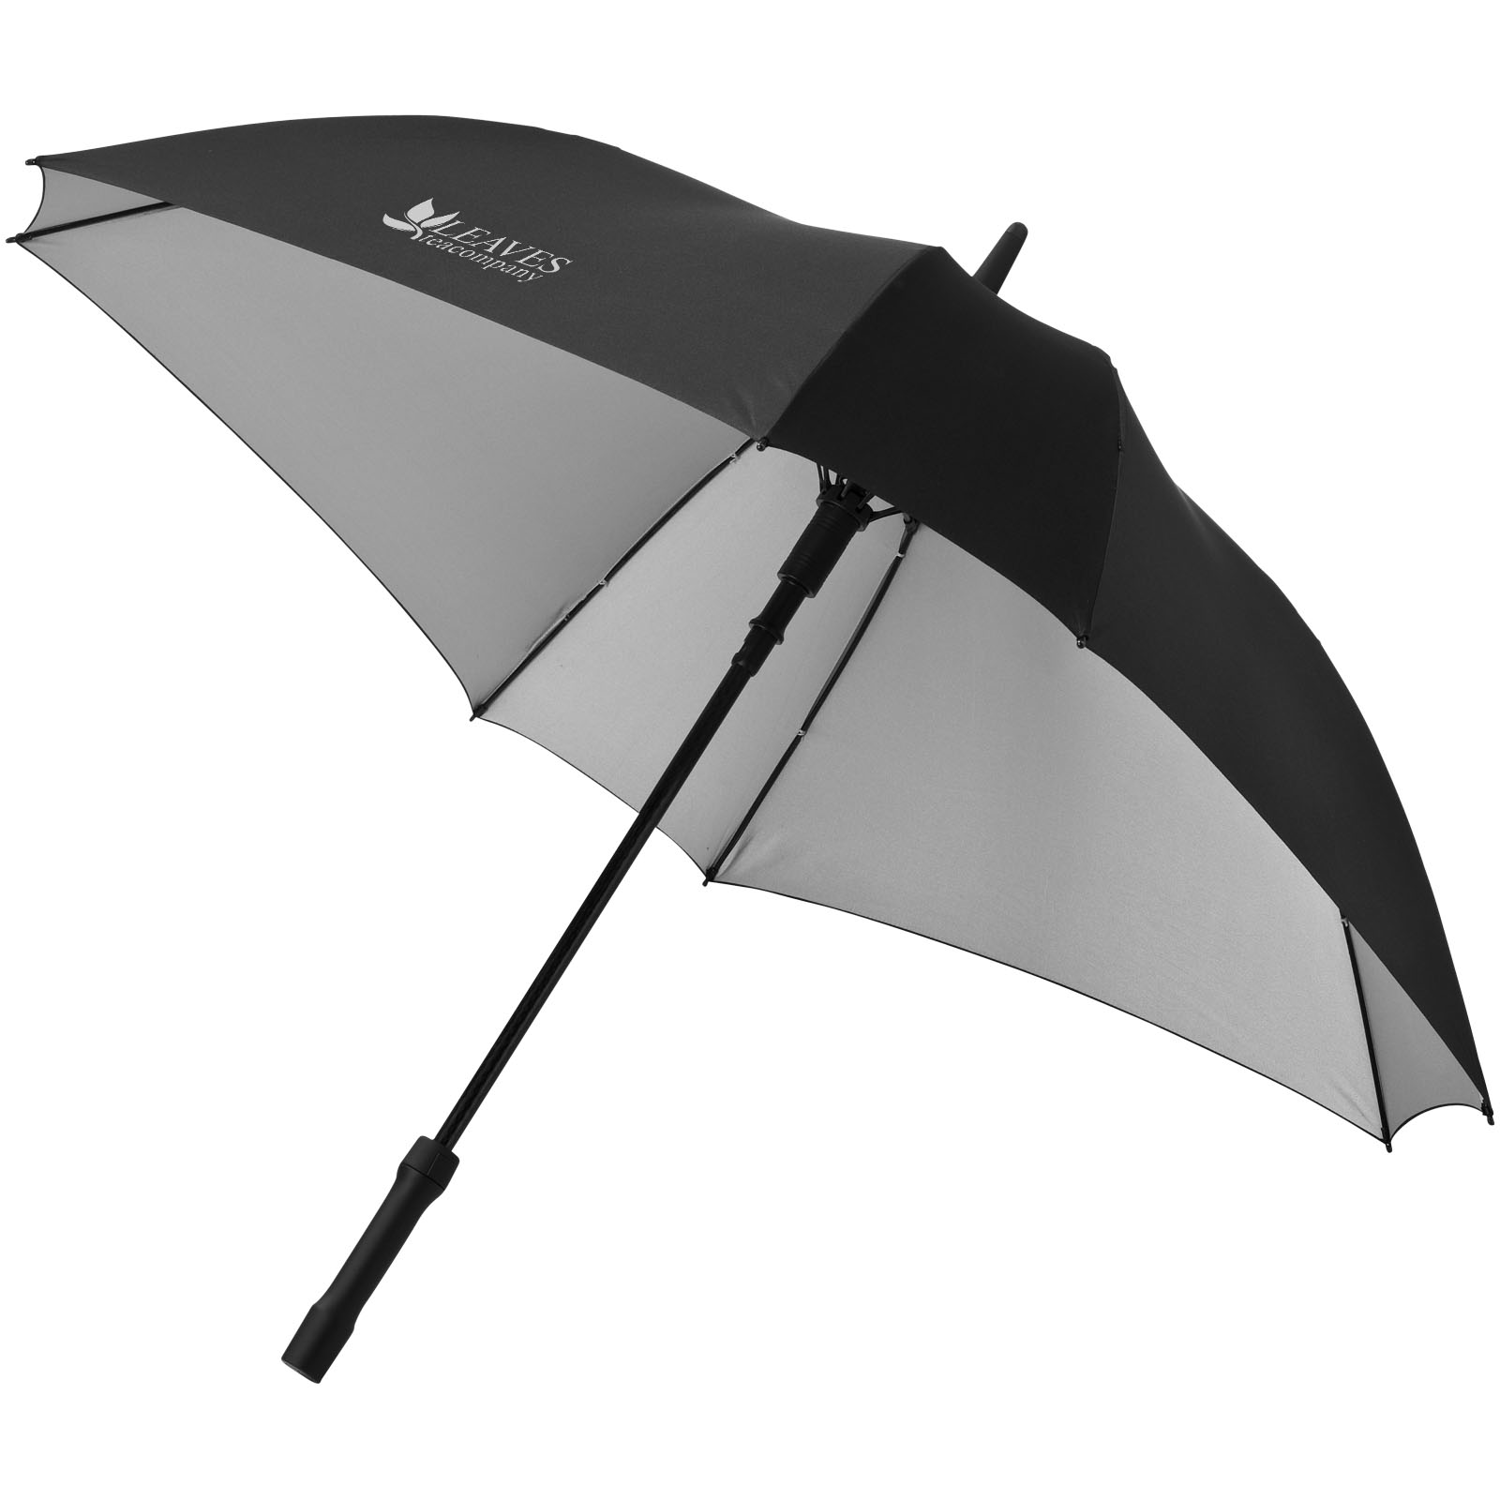 Square 23Inch Double-Layered Auto Open Umbrella